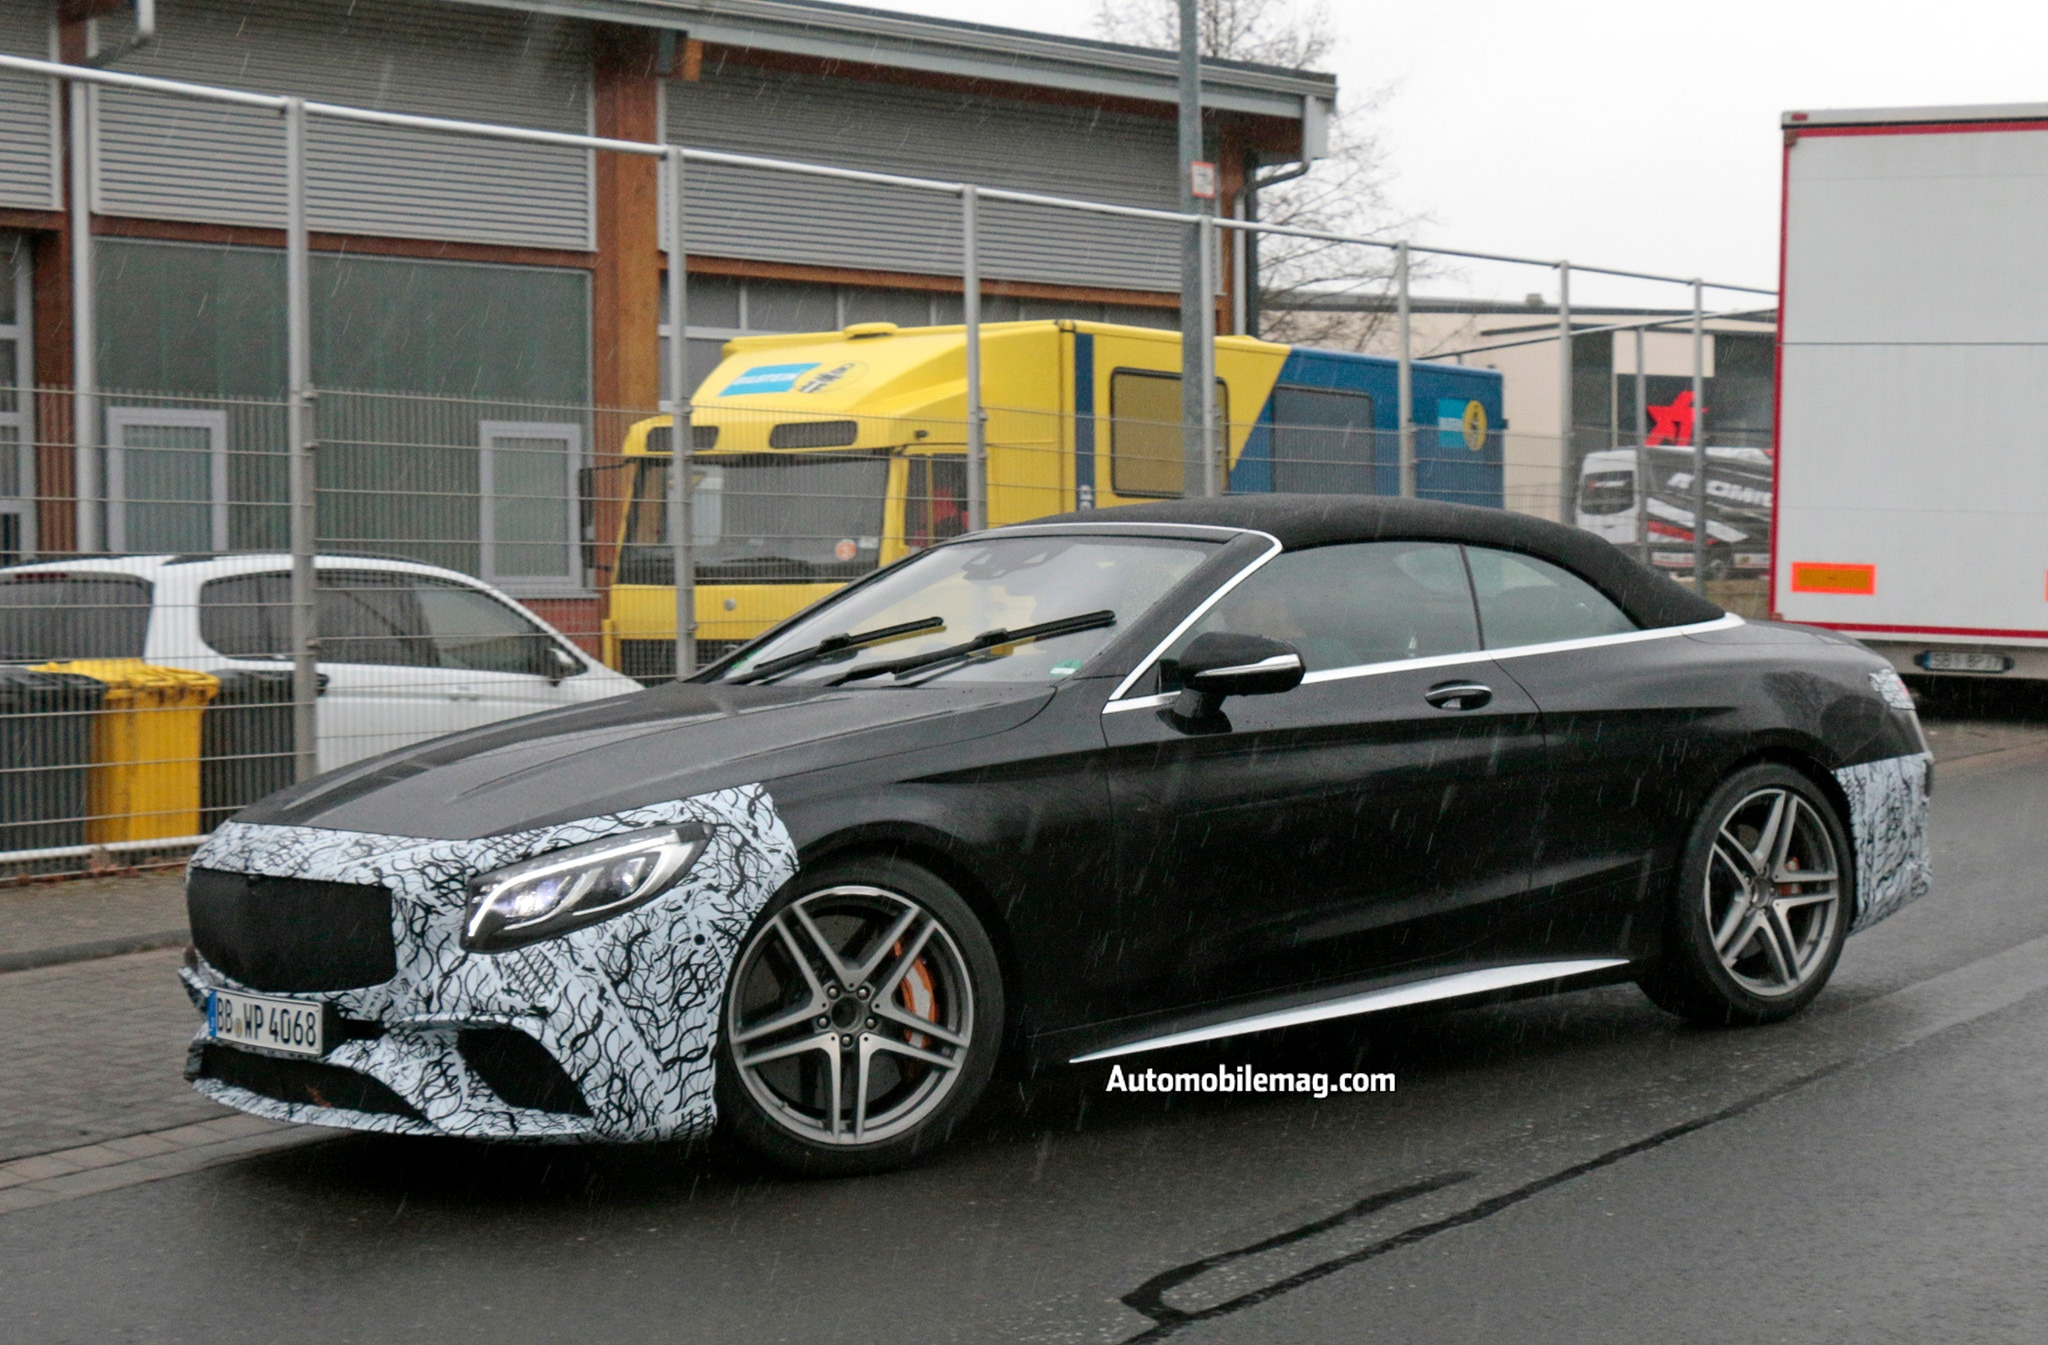 mildly revised mercedes amg s63 s cabriolet spied during testing automobile magazine. Black Bedroom Furniture Sets. Home Design Ideas